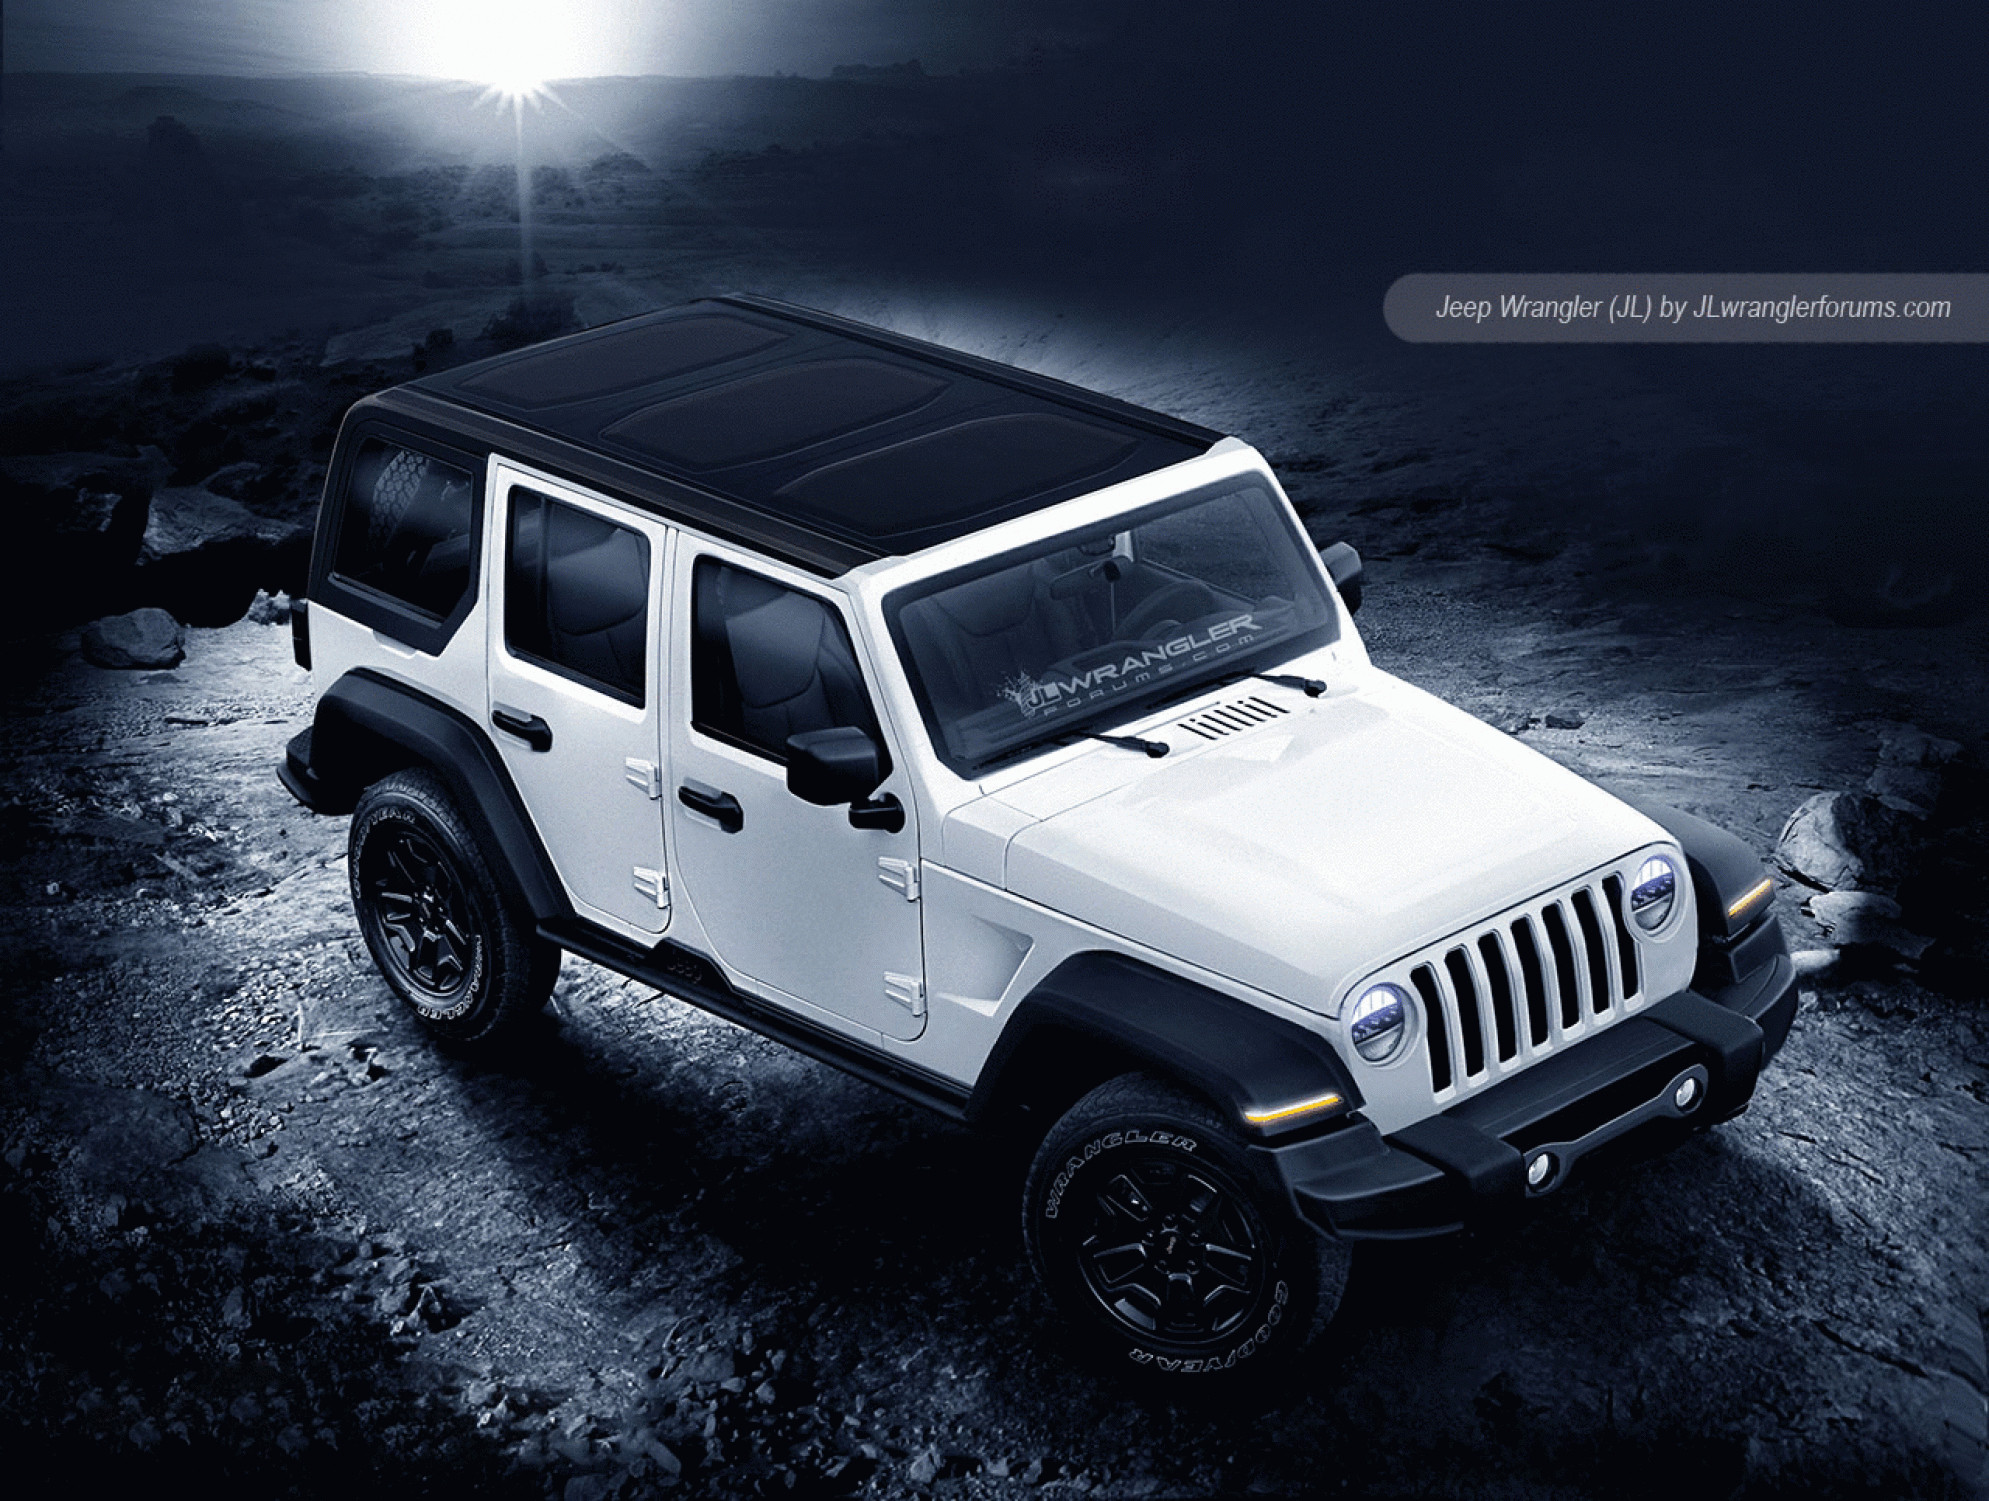 55 Jeep Wrangler Wallpaper Hd Android Iphone Desktop Hd Backgrounds Wallpapers 1080p 4k 1989x1501 2020